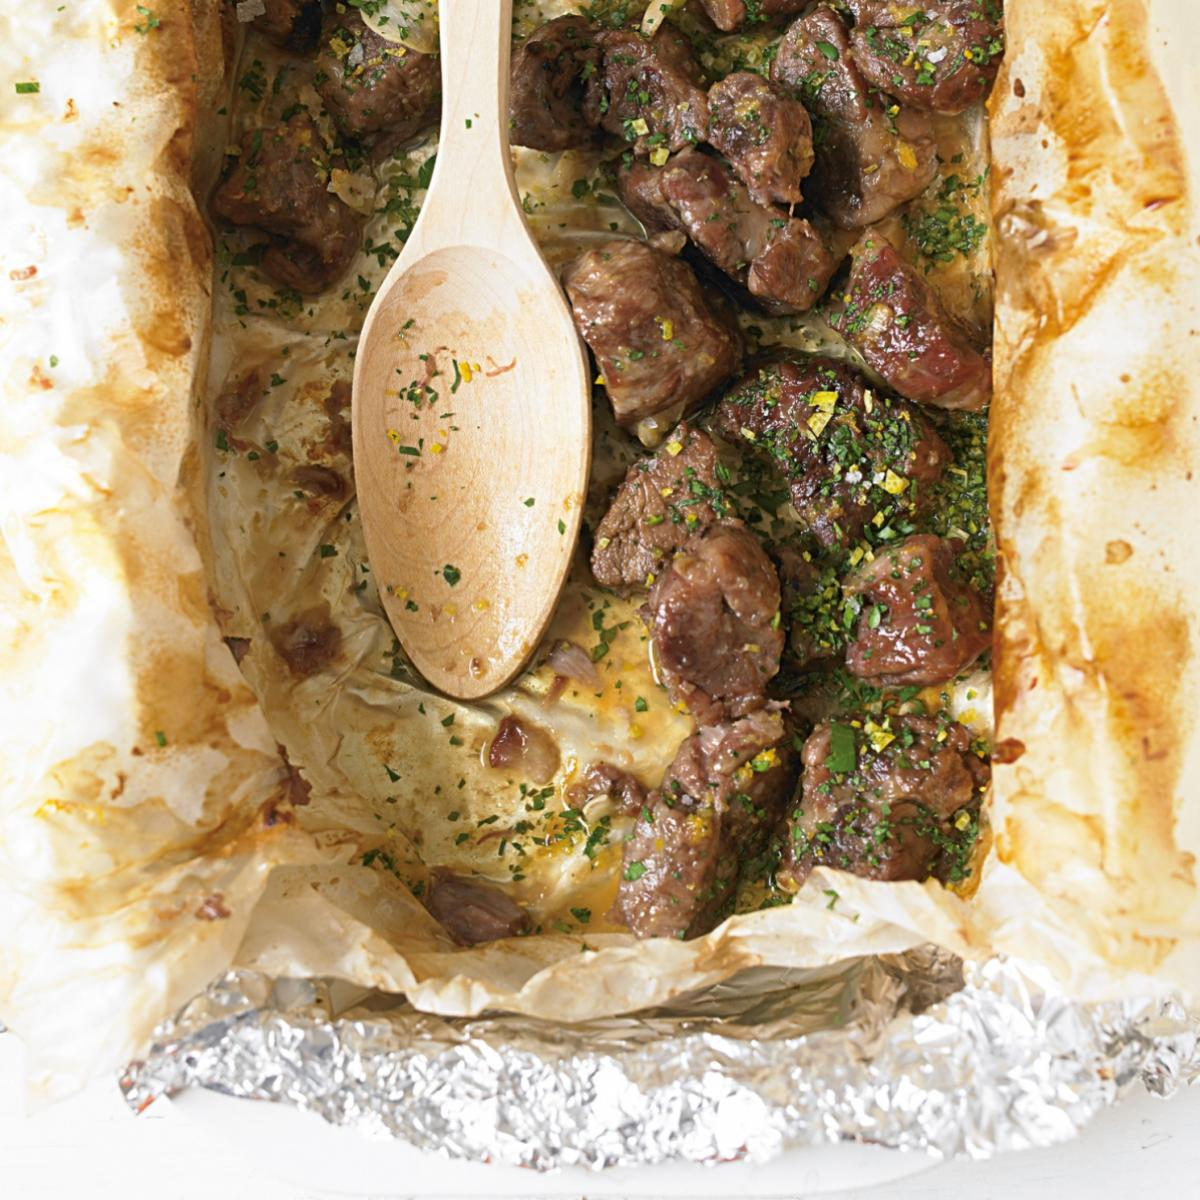 A picture of Delia's Greek Lamb Baked with Lemon and Garlic recipe